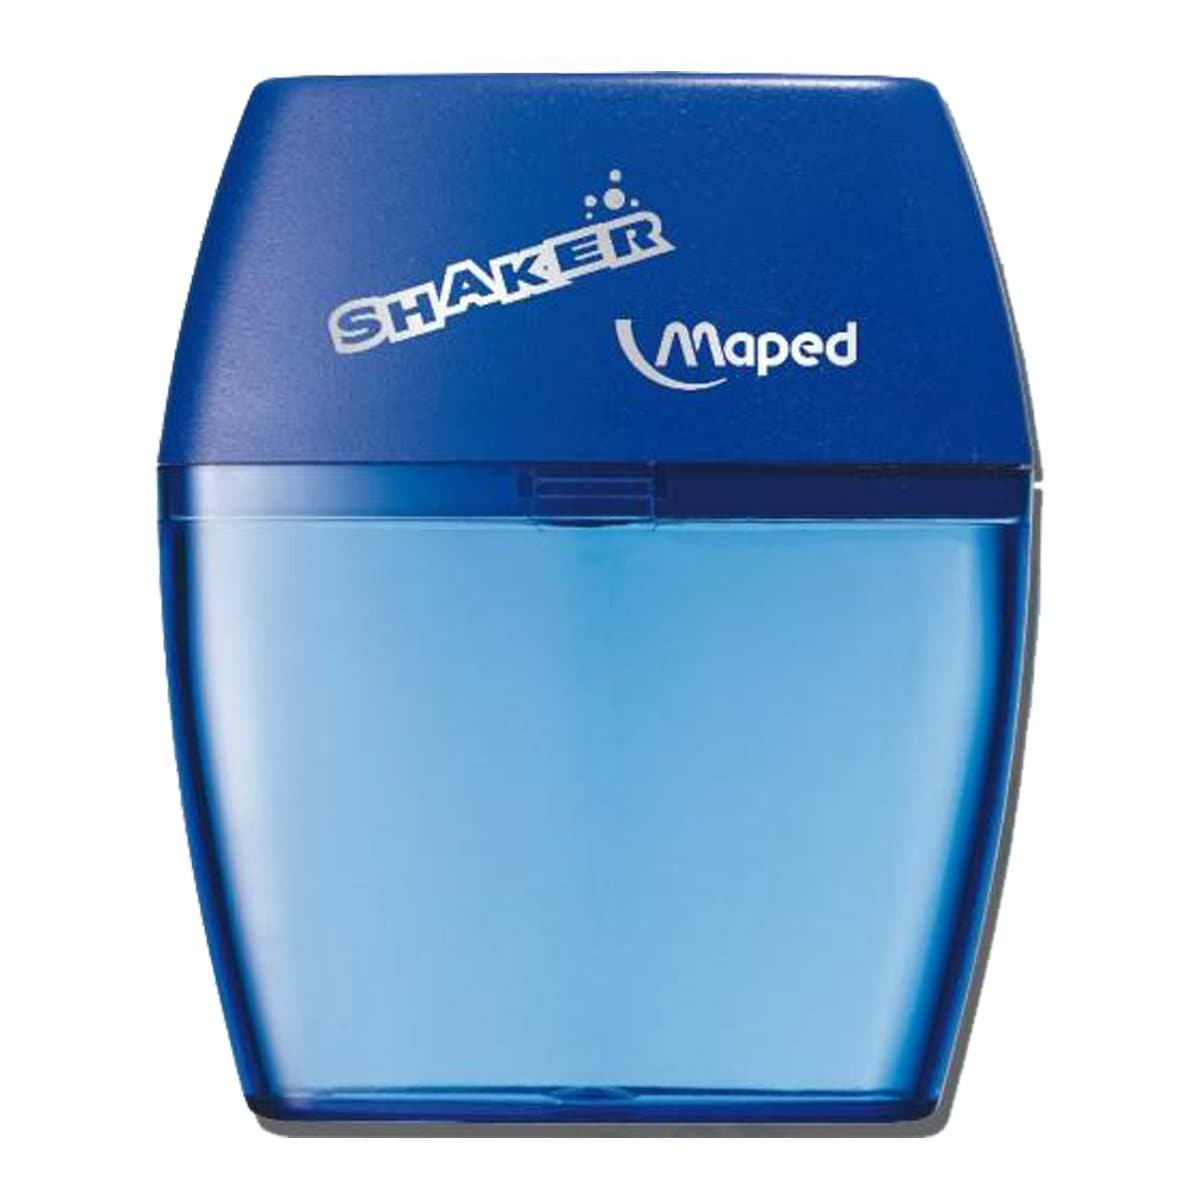 Maped Sharpener SHAKER 2 Holes, MD-534755, Assorted Colors